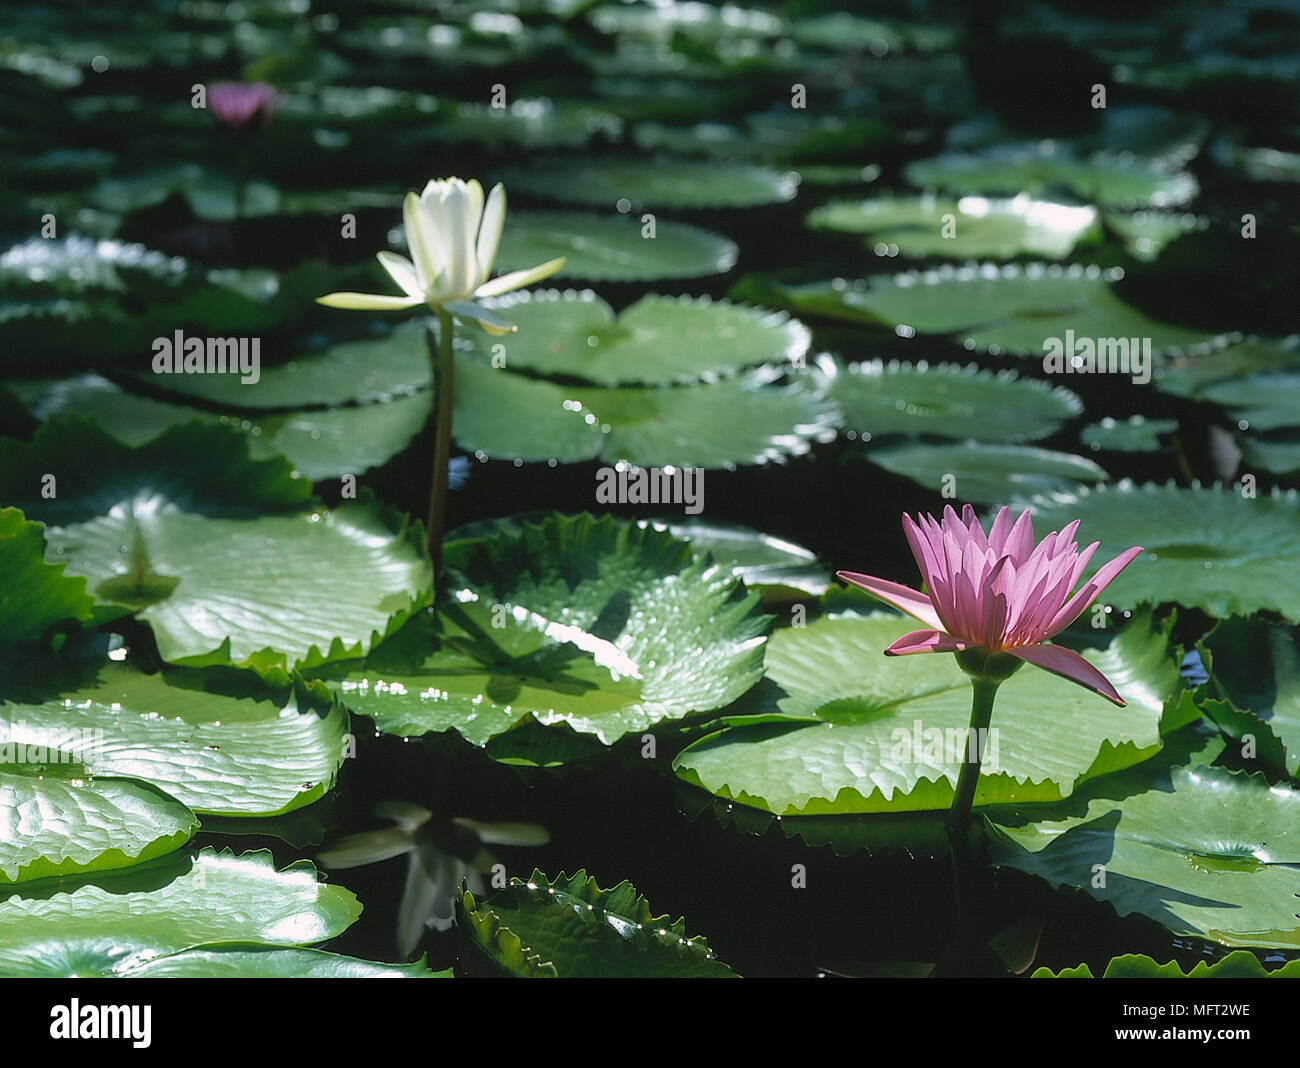 Water Lily Lotus Flowers Floating In Pool Stock Photo 181852650 Alamy